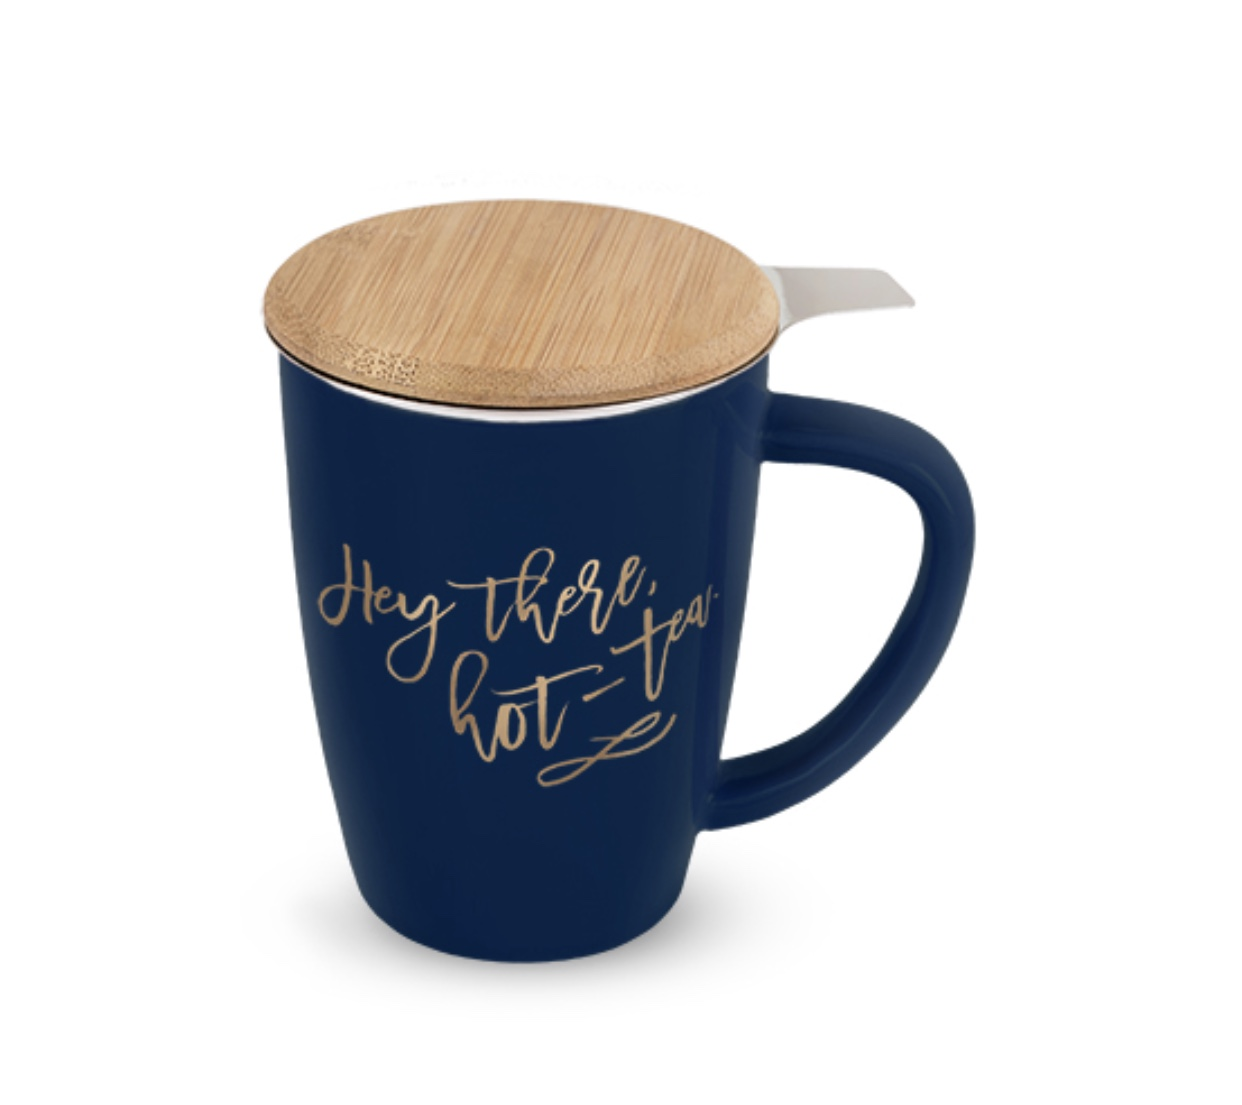 Bailey Ceramic Tea Mug and Infuser in Hot-Tea by Pinky Up